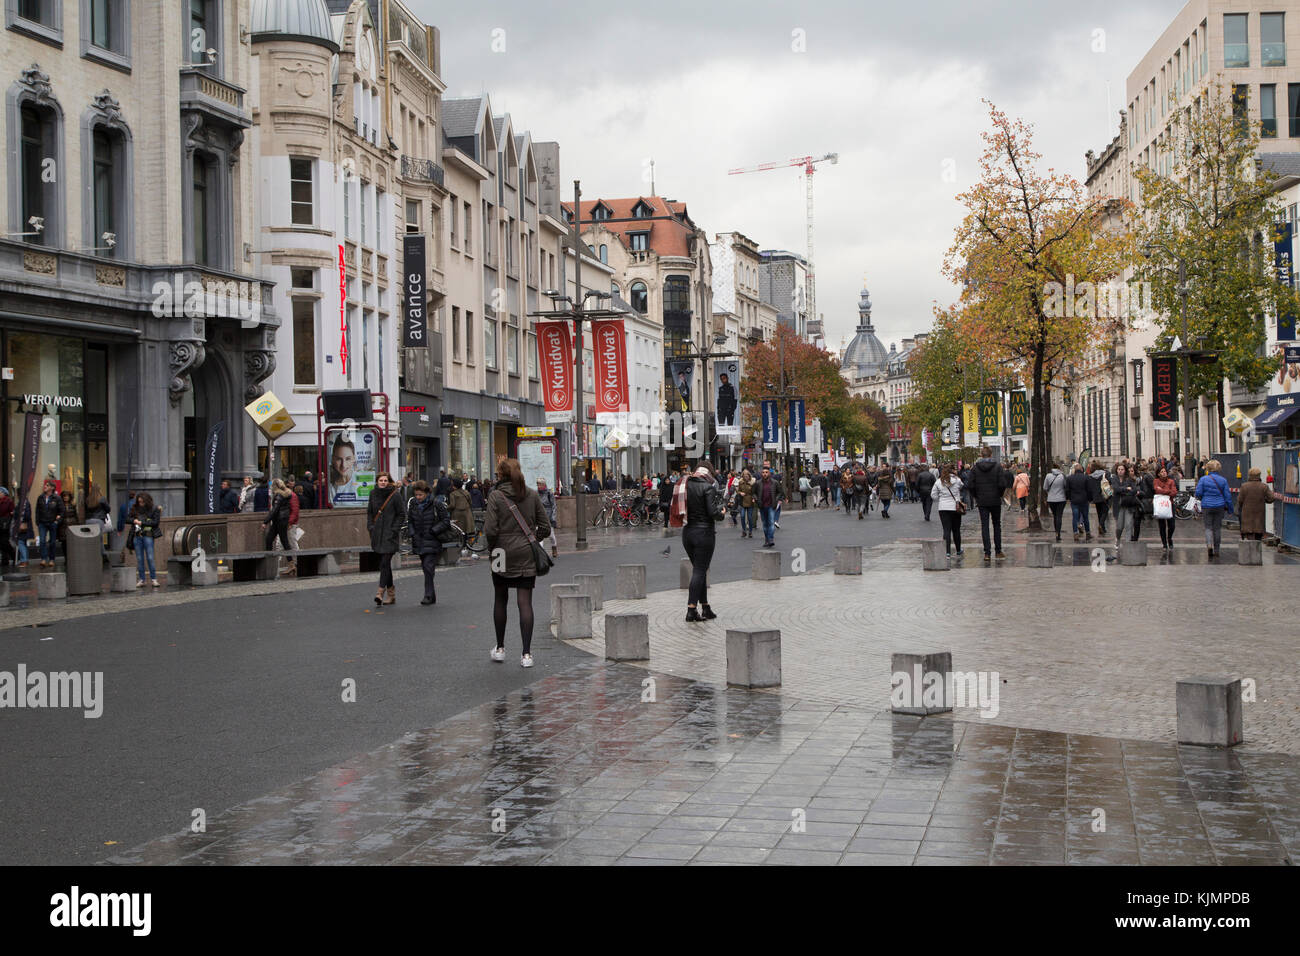 The  Meir in Antwerp, Belgium. The pedestrianized street is the city's main shopping area. - Stock Image